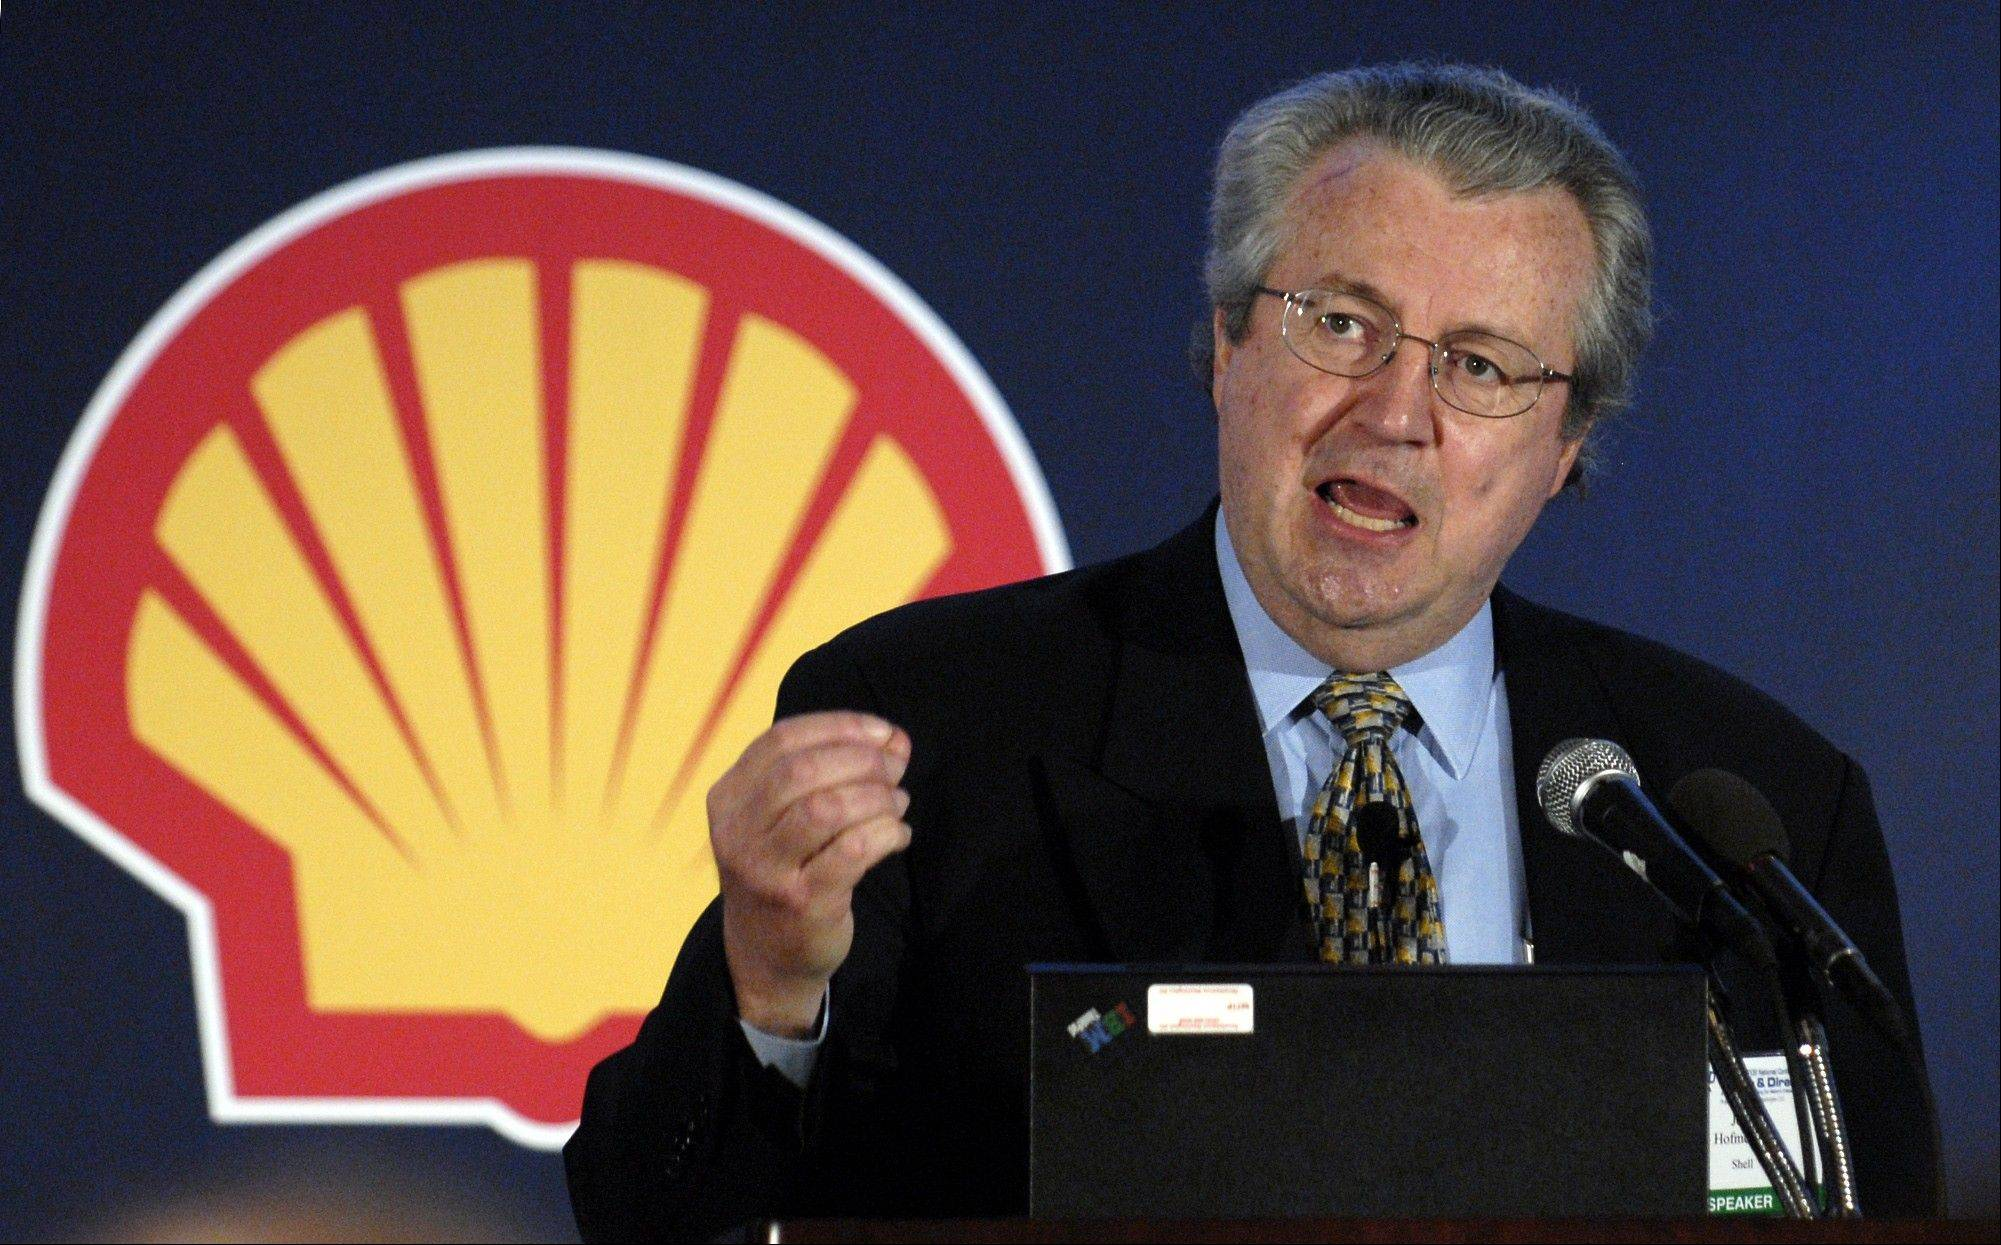 In this Aug. 22, 2006, file photo, then-Shell Oil Co. president John Hofmeister addresses a conference to discuss the protection of and potential threats to national and global critical infrastructures in Washington. In a recent interview with AP, Hofmeister says oil and gas companies often do a terrible job at communicating.